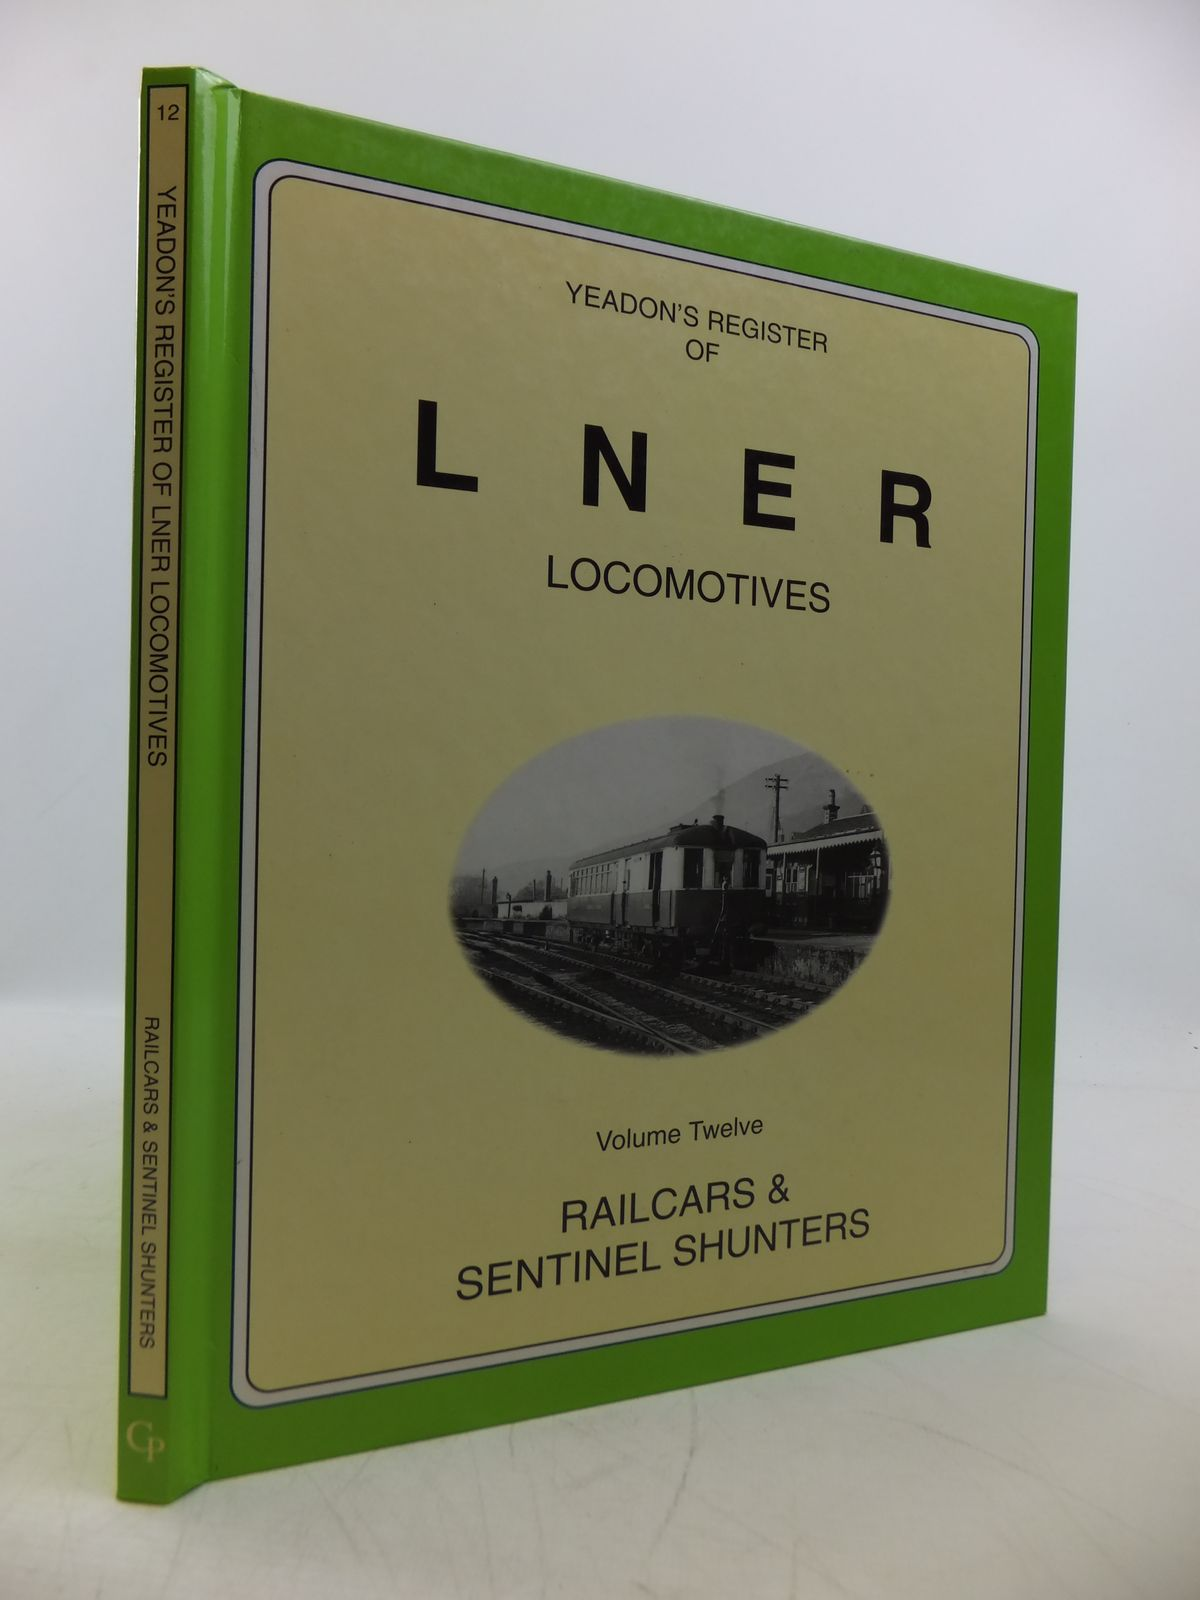 Photo of YEADON'S REGISTER OF LNER LOCOMOTIVES VOLUME TWELVE published by Challenger Publications (STOCK CODE: 1811535)  for sale by Stella & Rose's Books